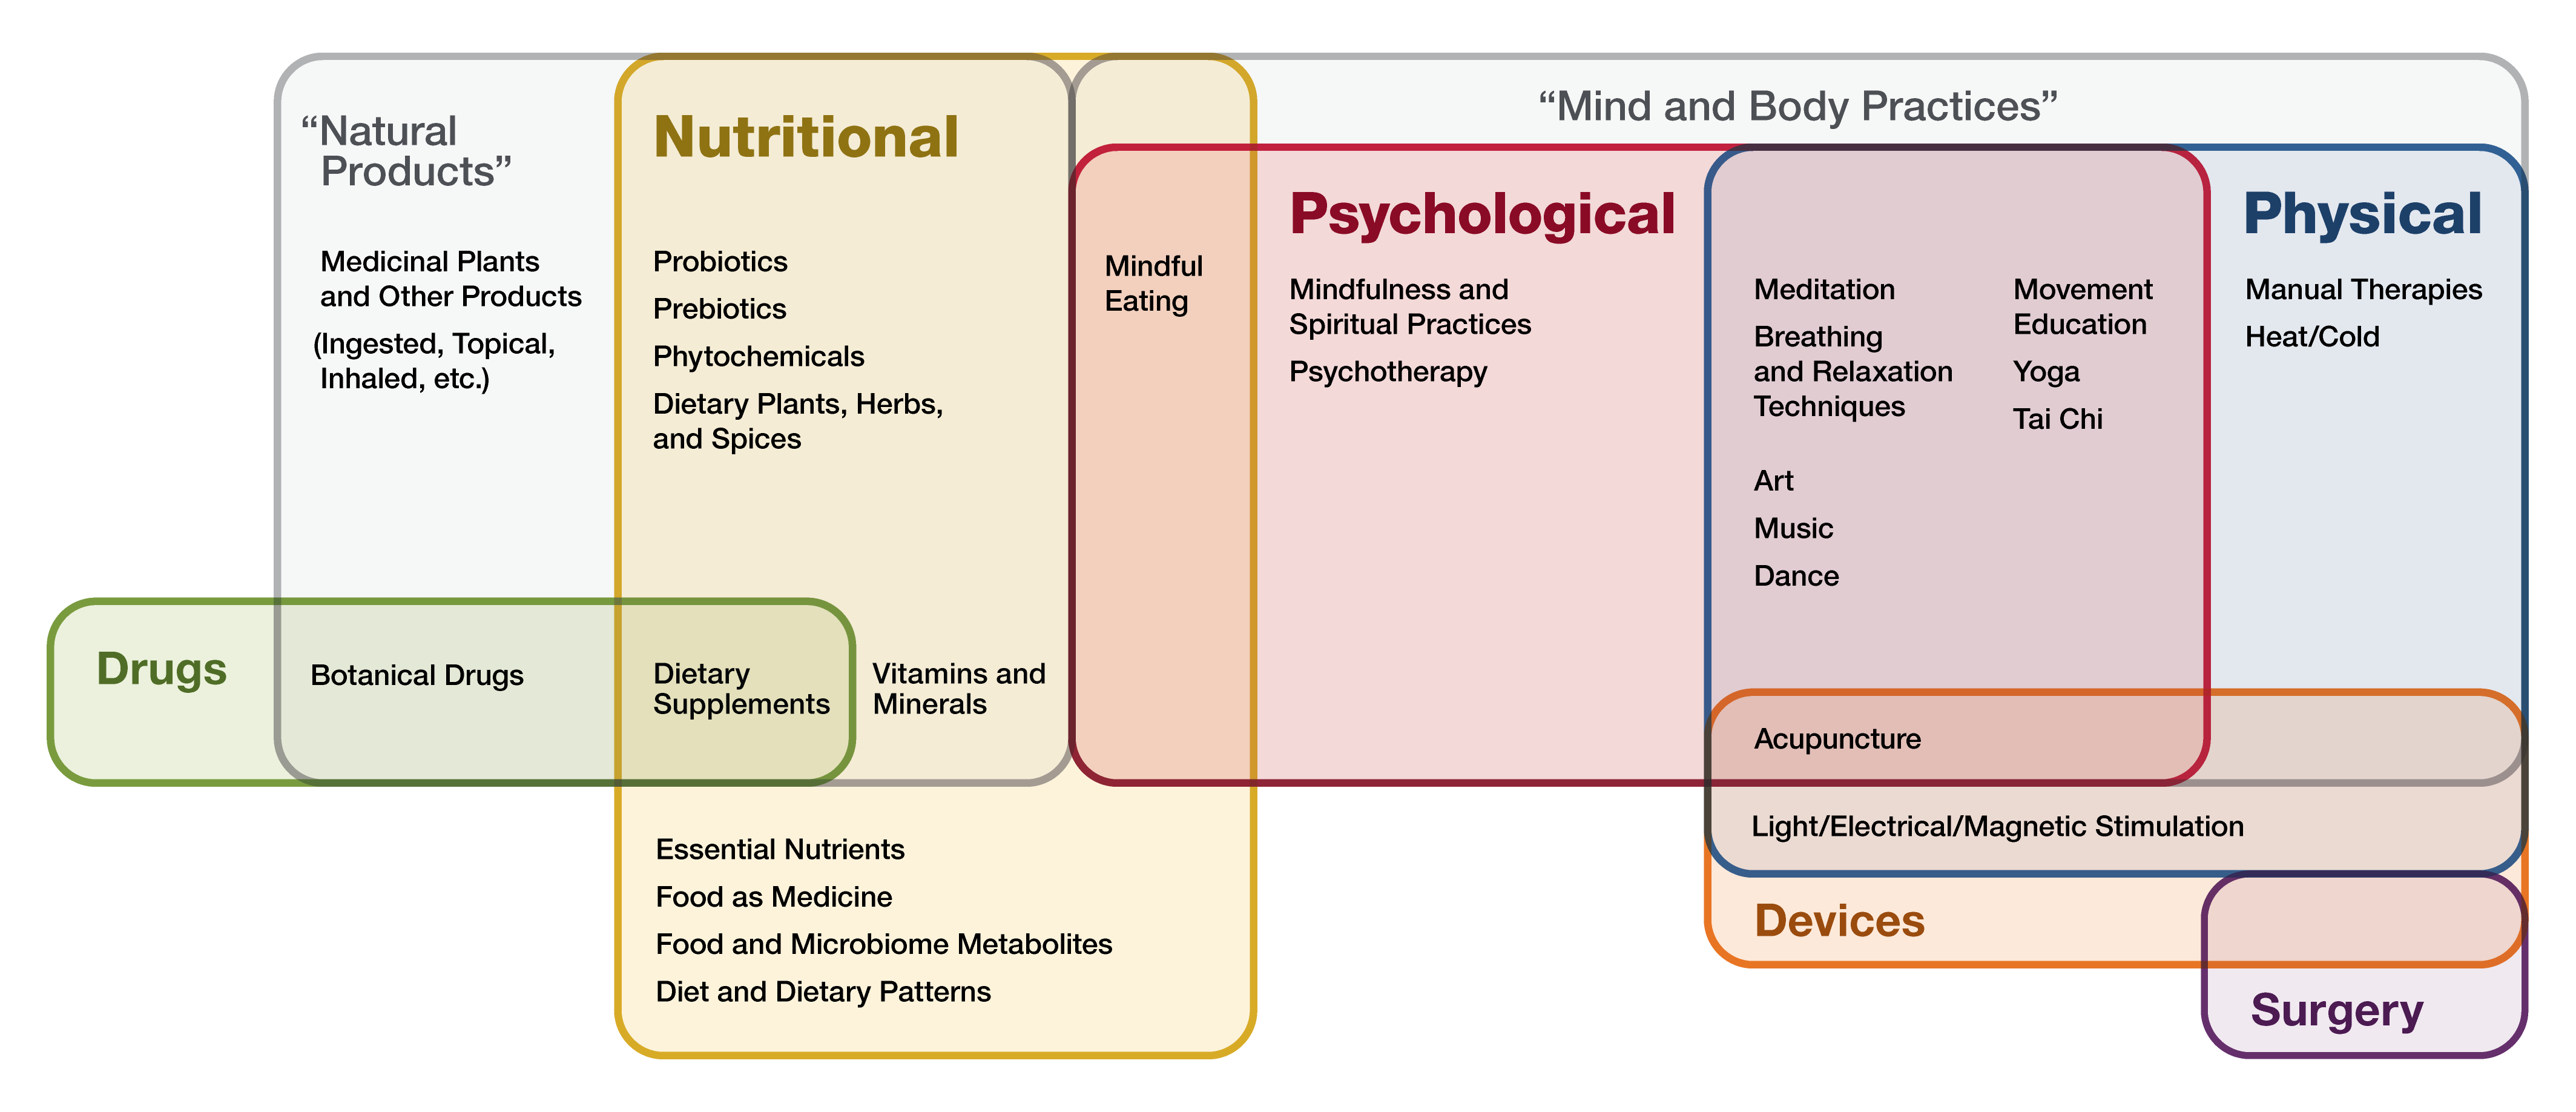 This graphic shows the primary therapeutic input of approaches that may be studied within the NCCIH portfolio. The specific modalities are meant to be illustrative of the types of approaches that fall within these categories.